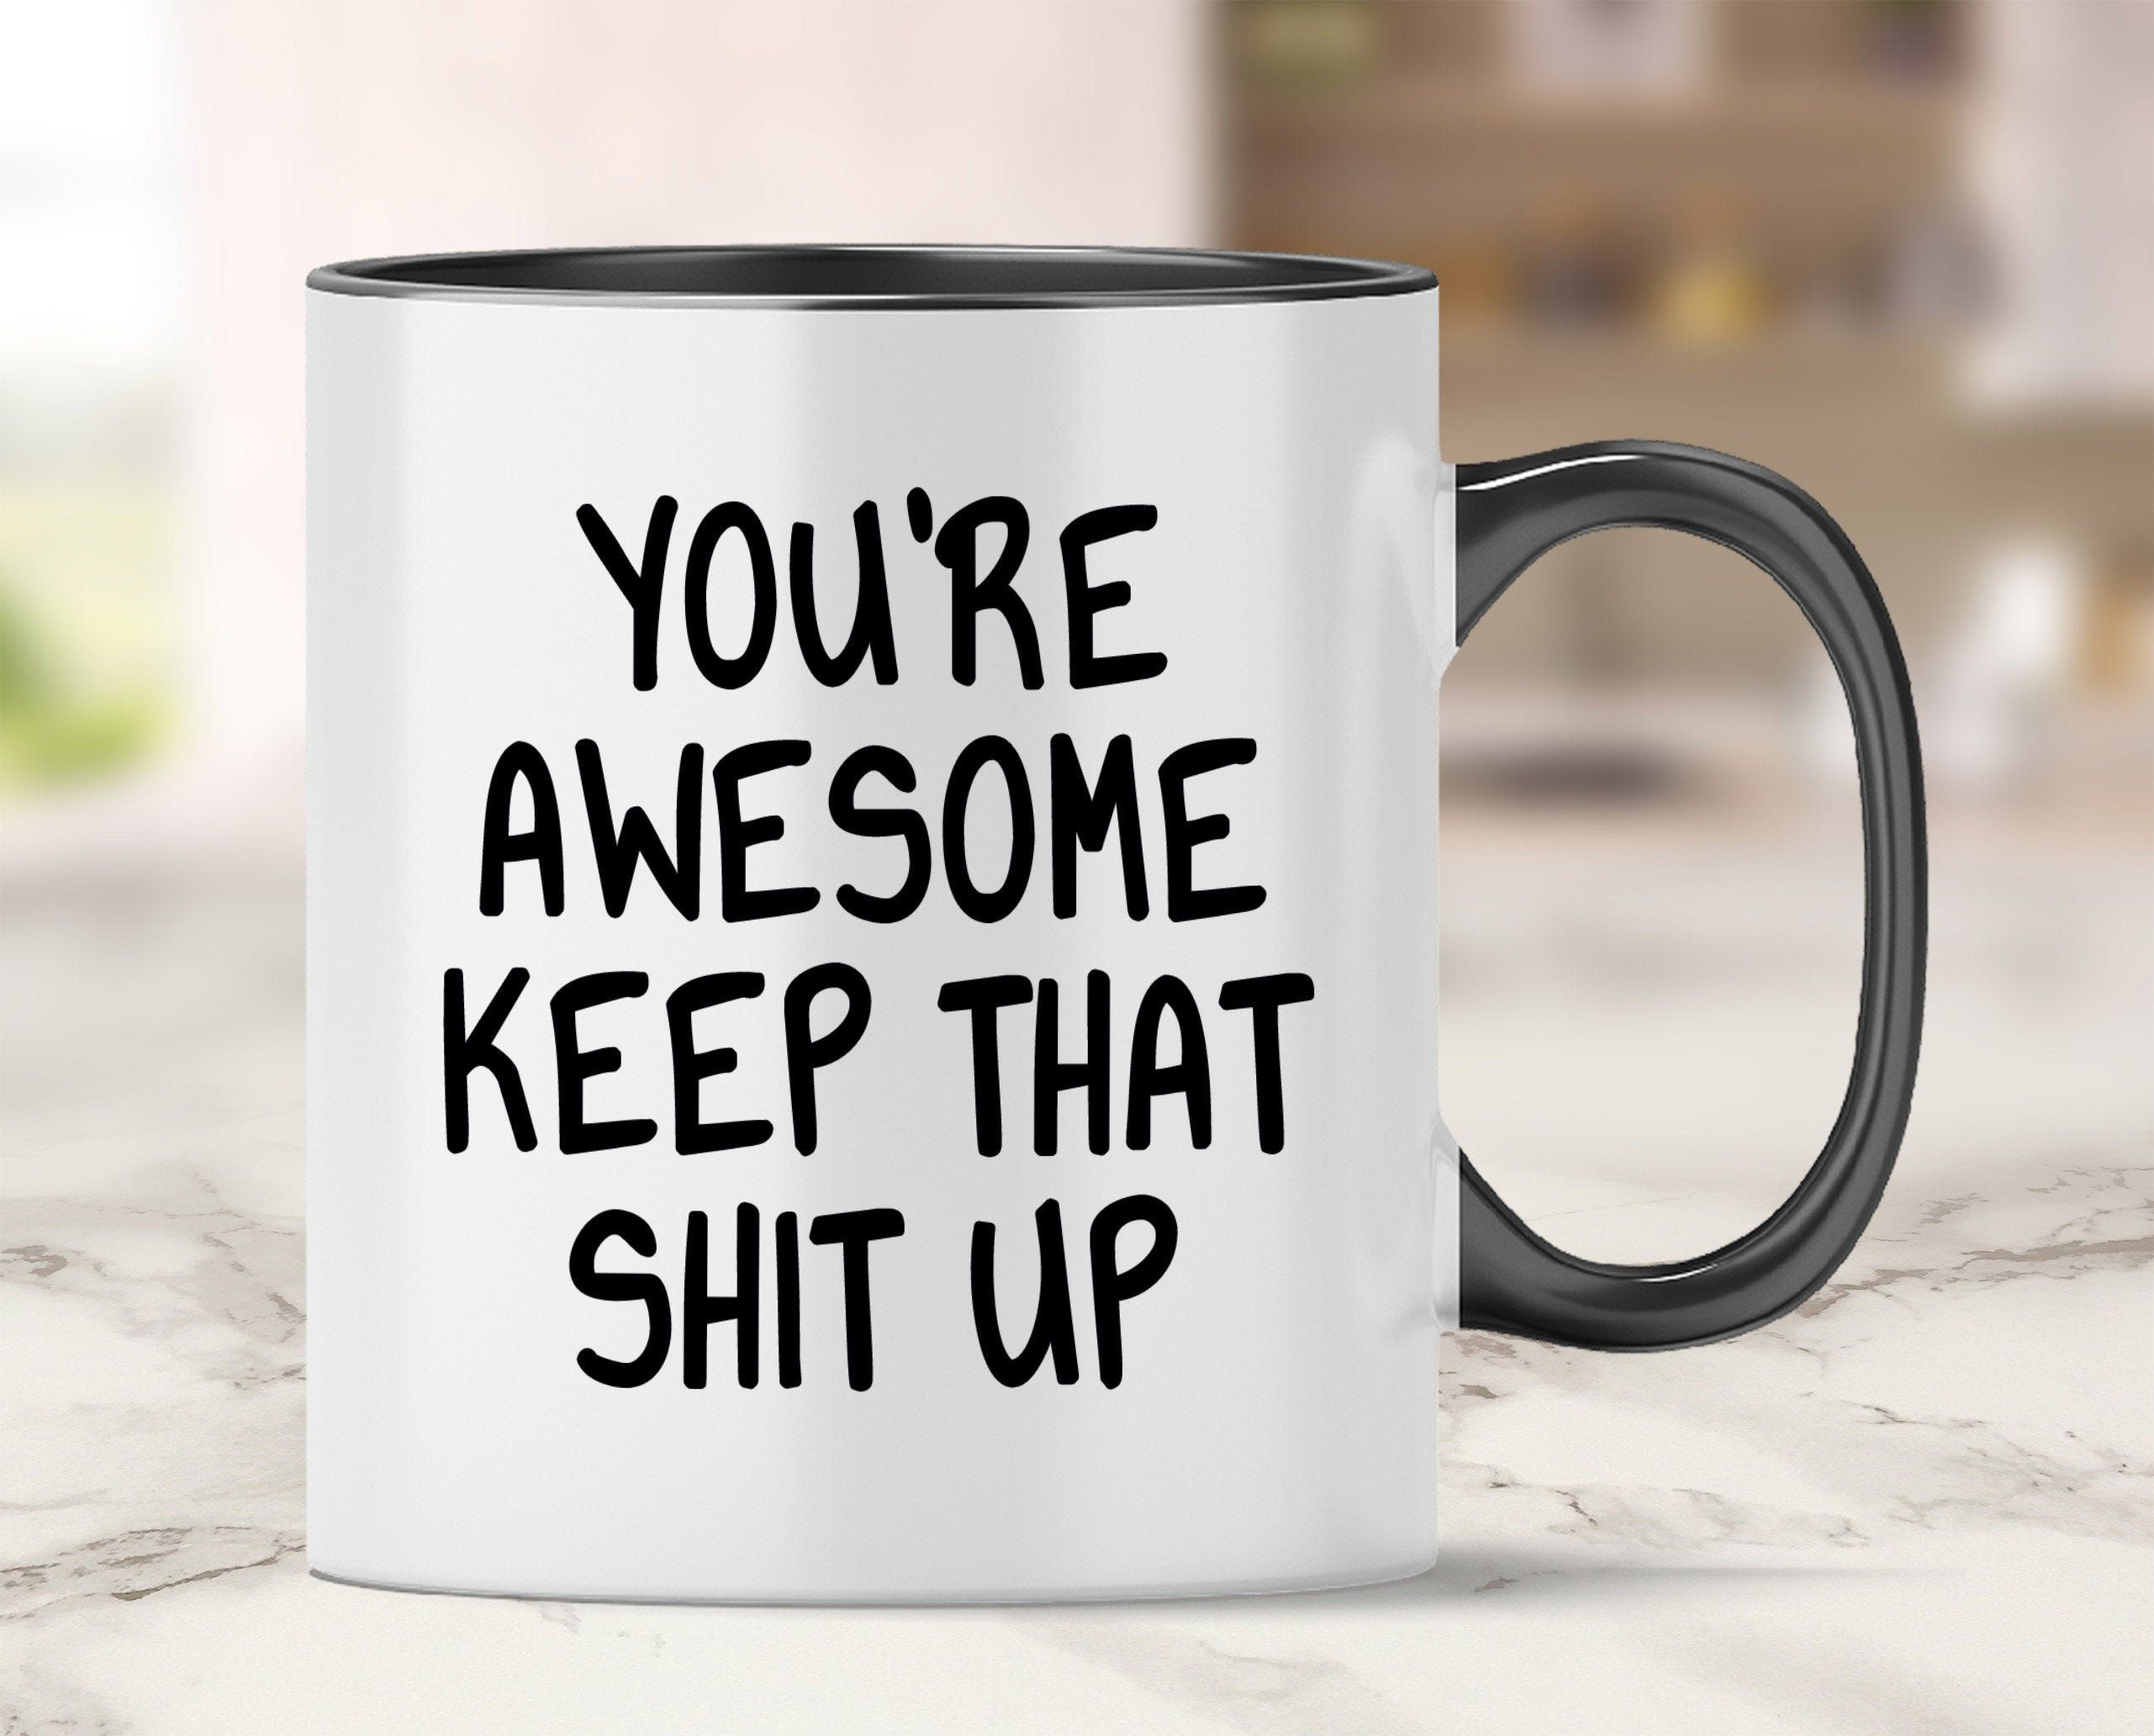 Funny Friends And Family Coffee Mug Gift You Re Awesome Etsy Birthday Presents For Men Friends Funny Presents For Men